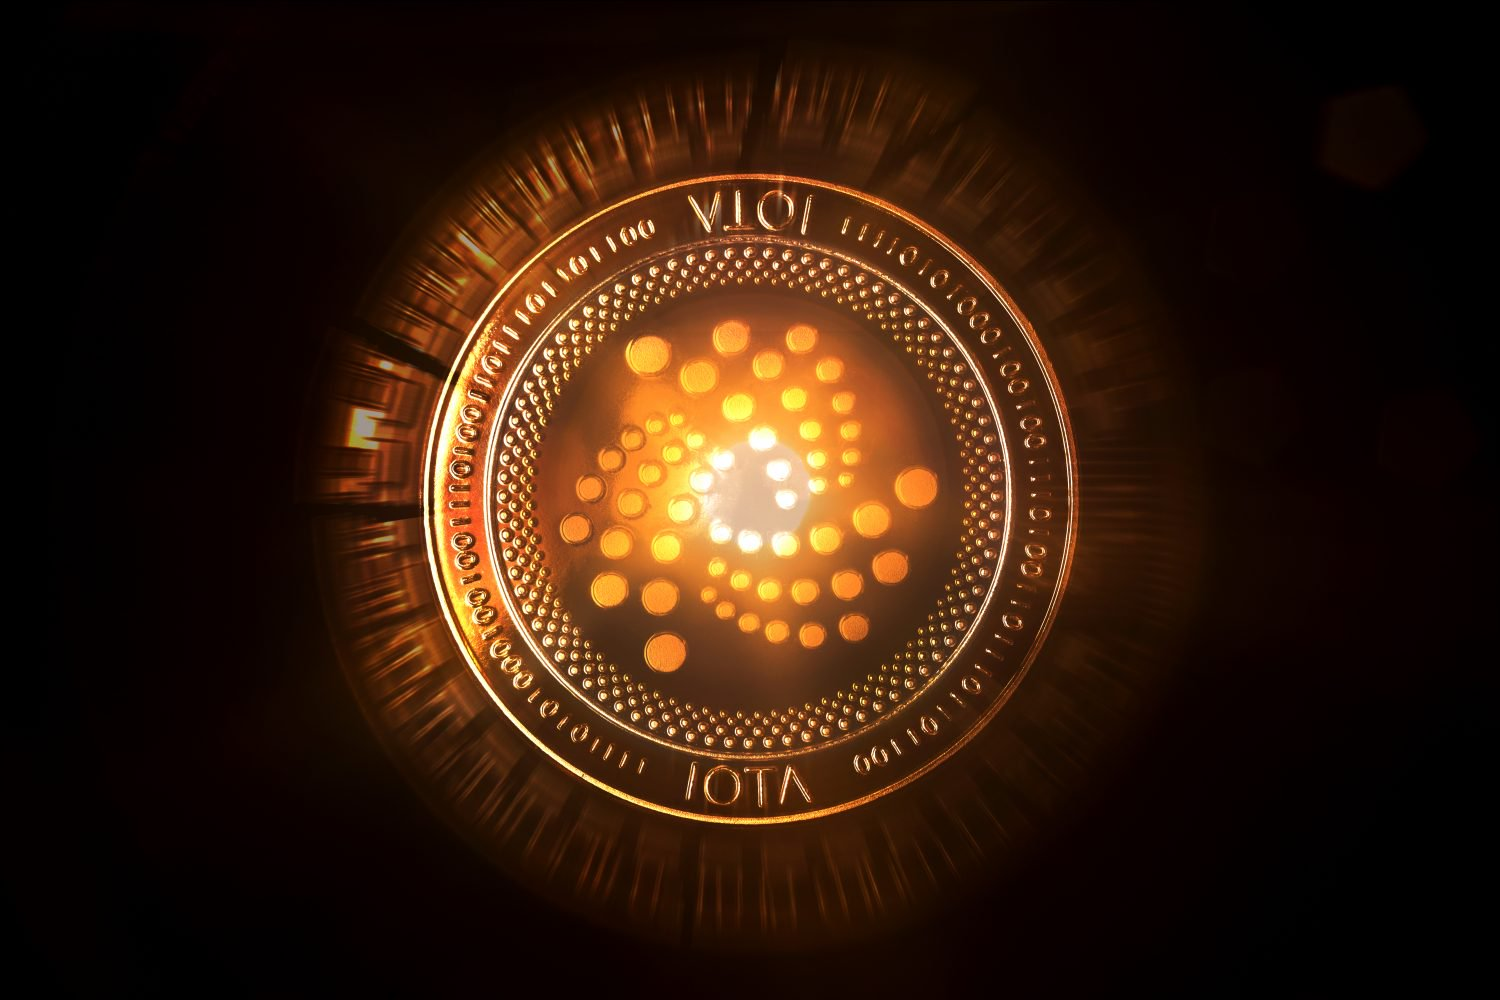 IOTA: The $2.7 Billion Cryptocurrency Developers Love to Hate